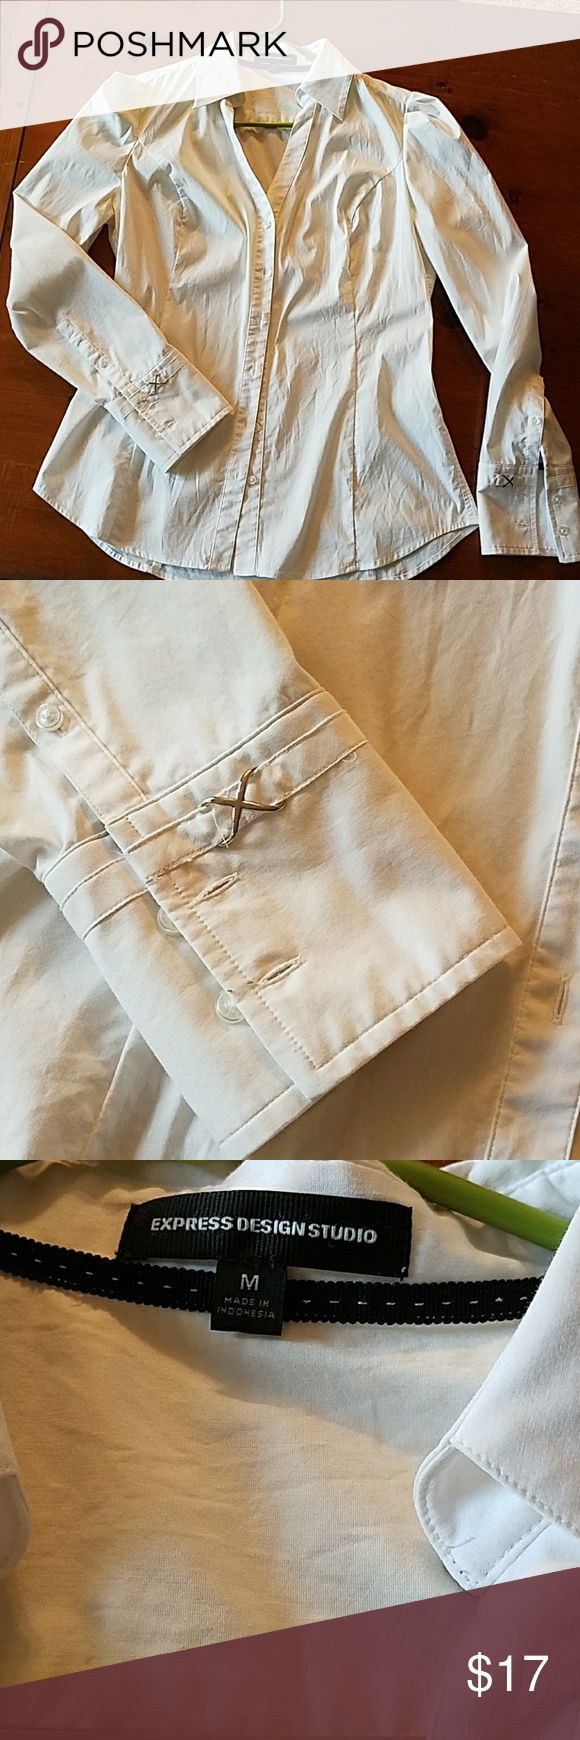 Essential express button down shirt White essential express shirt with cufflink detail. Slight pleats at the shoulder give this a feminine edge. Express Tops Button Down Shirts